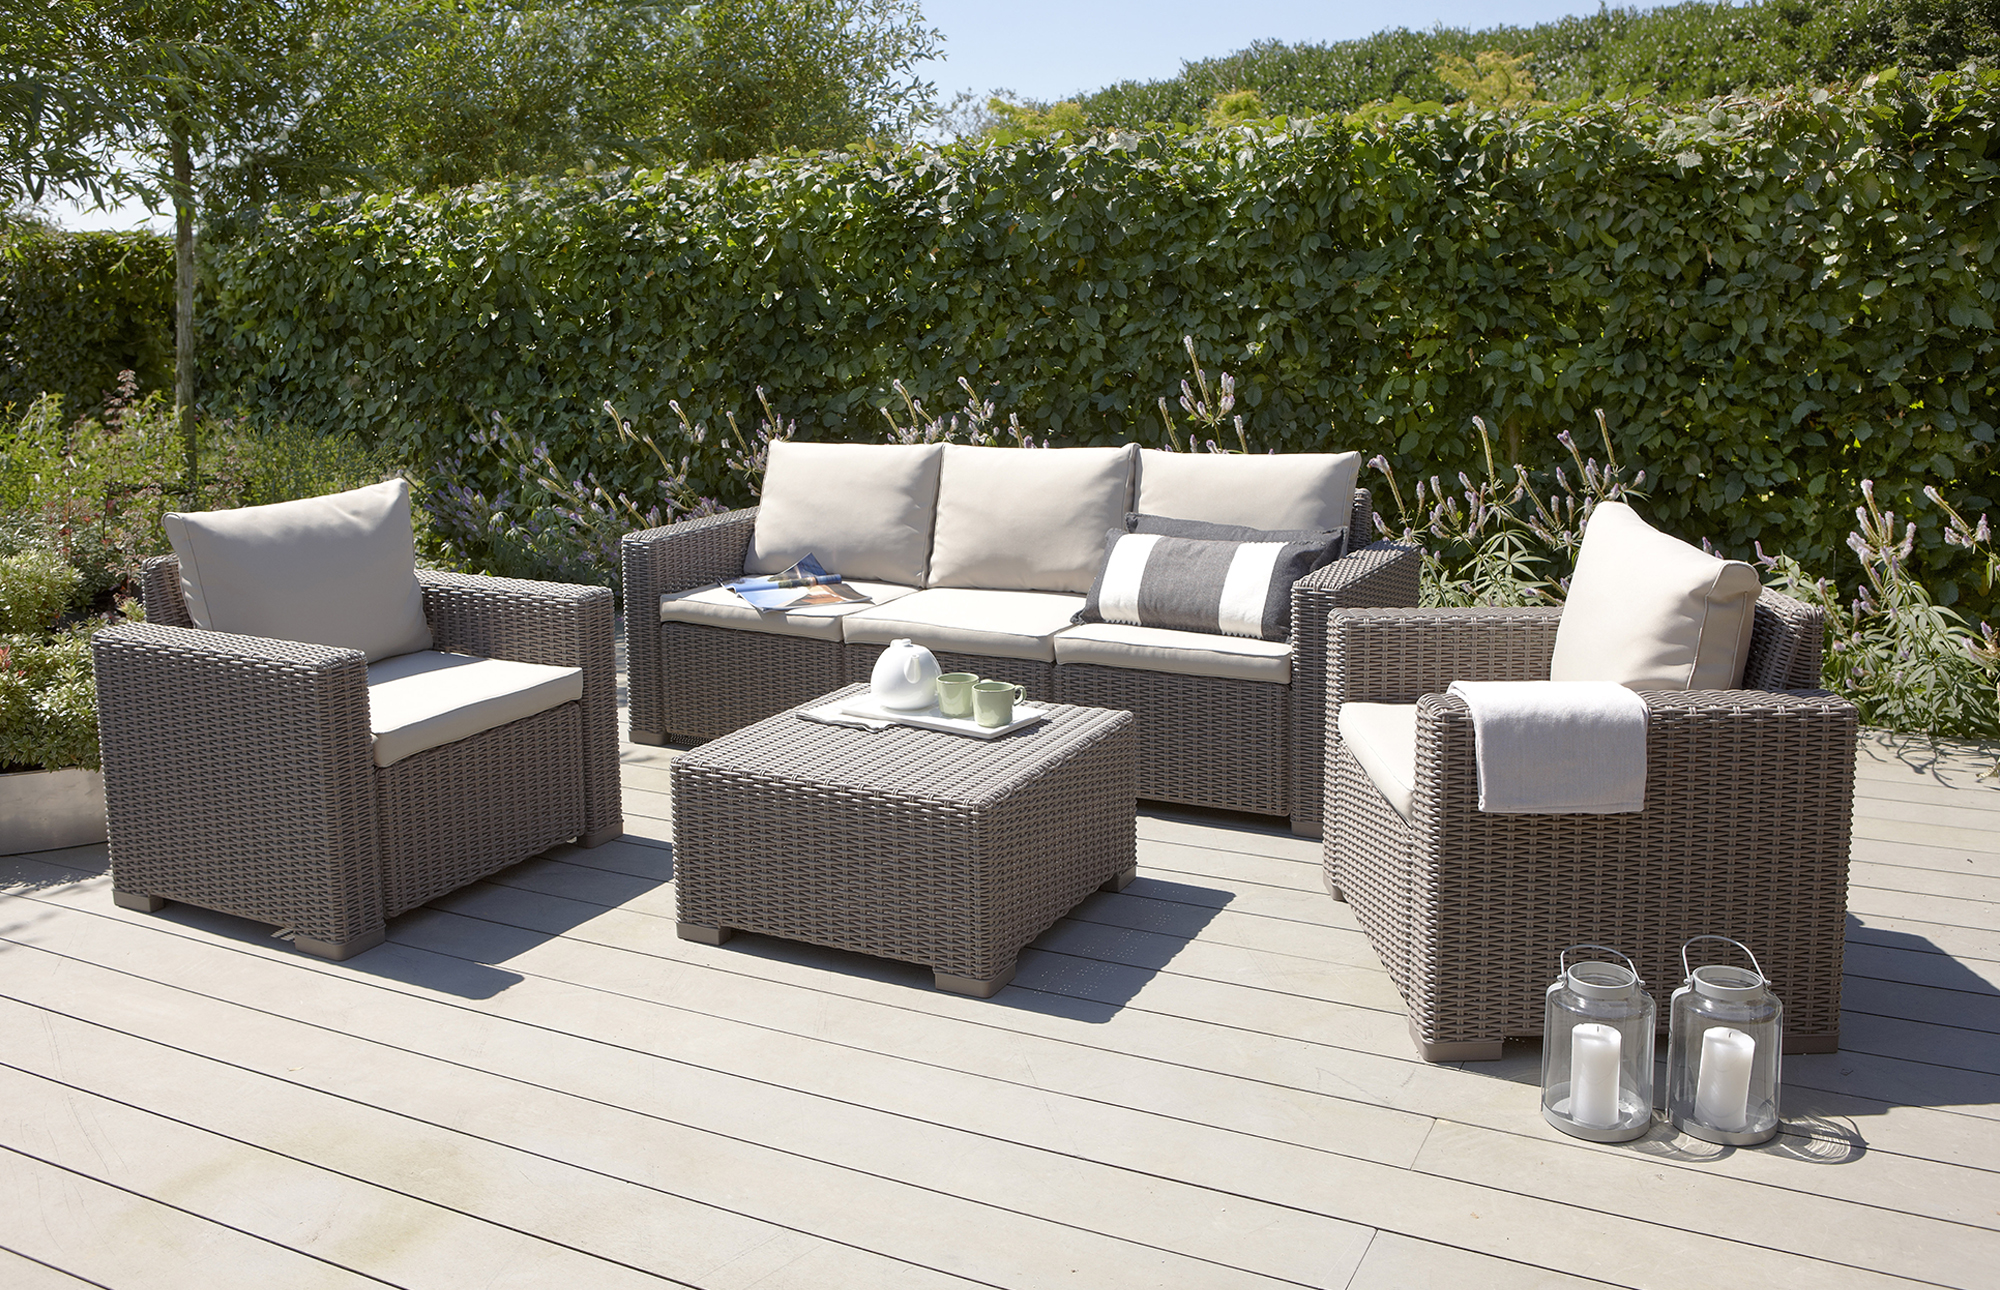 Rattan Garden Furniture Set garden-furniture-rattan-sets-breathtaking-rattan-garden-furniture-bistro- sets-breathtaking-outdoor-patio-furniture-covers - rattan garden furniture  sets ... CCPXIHP